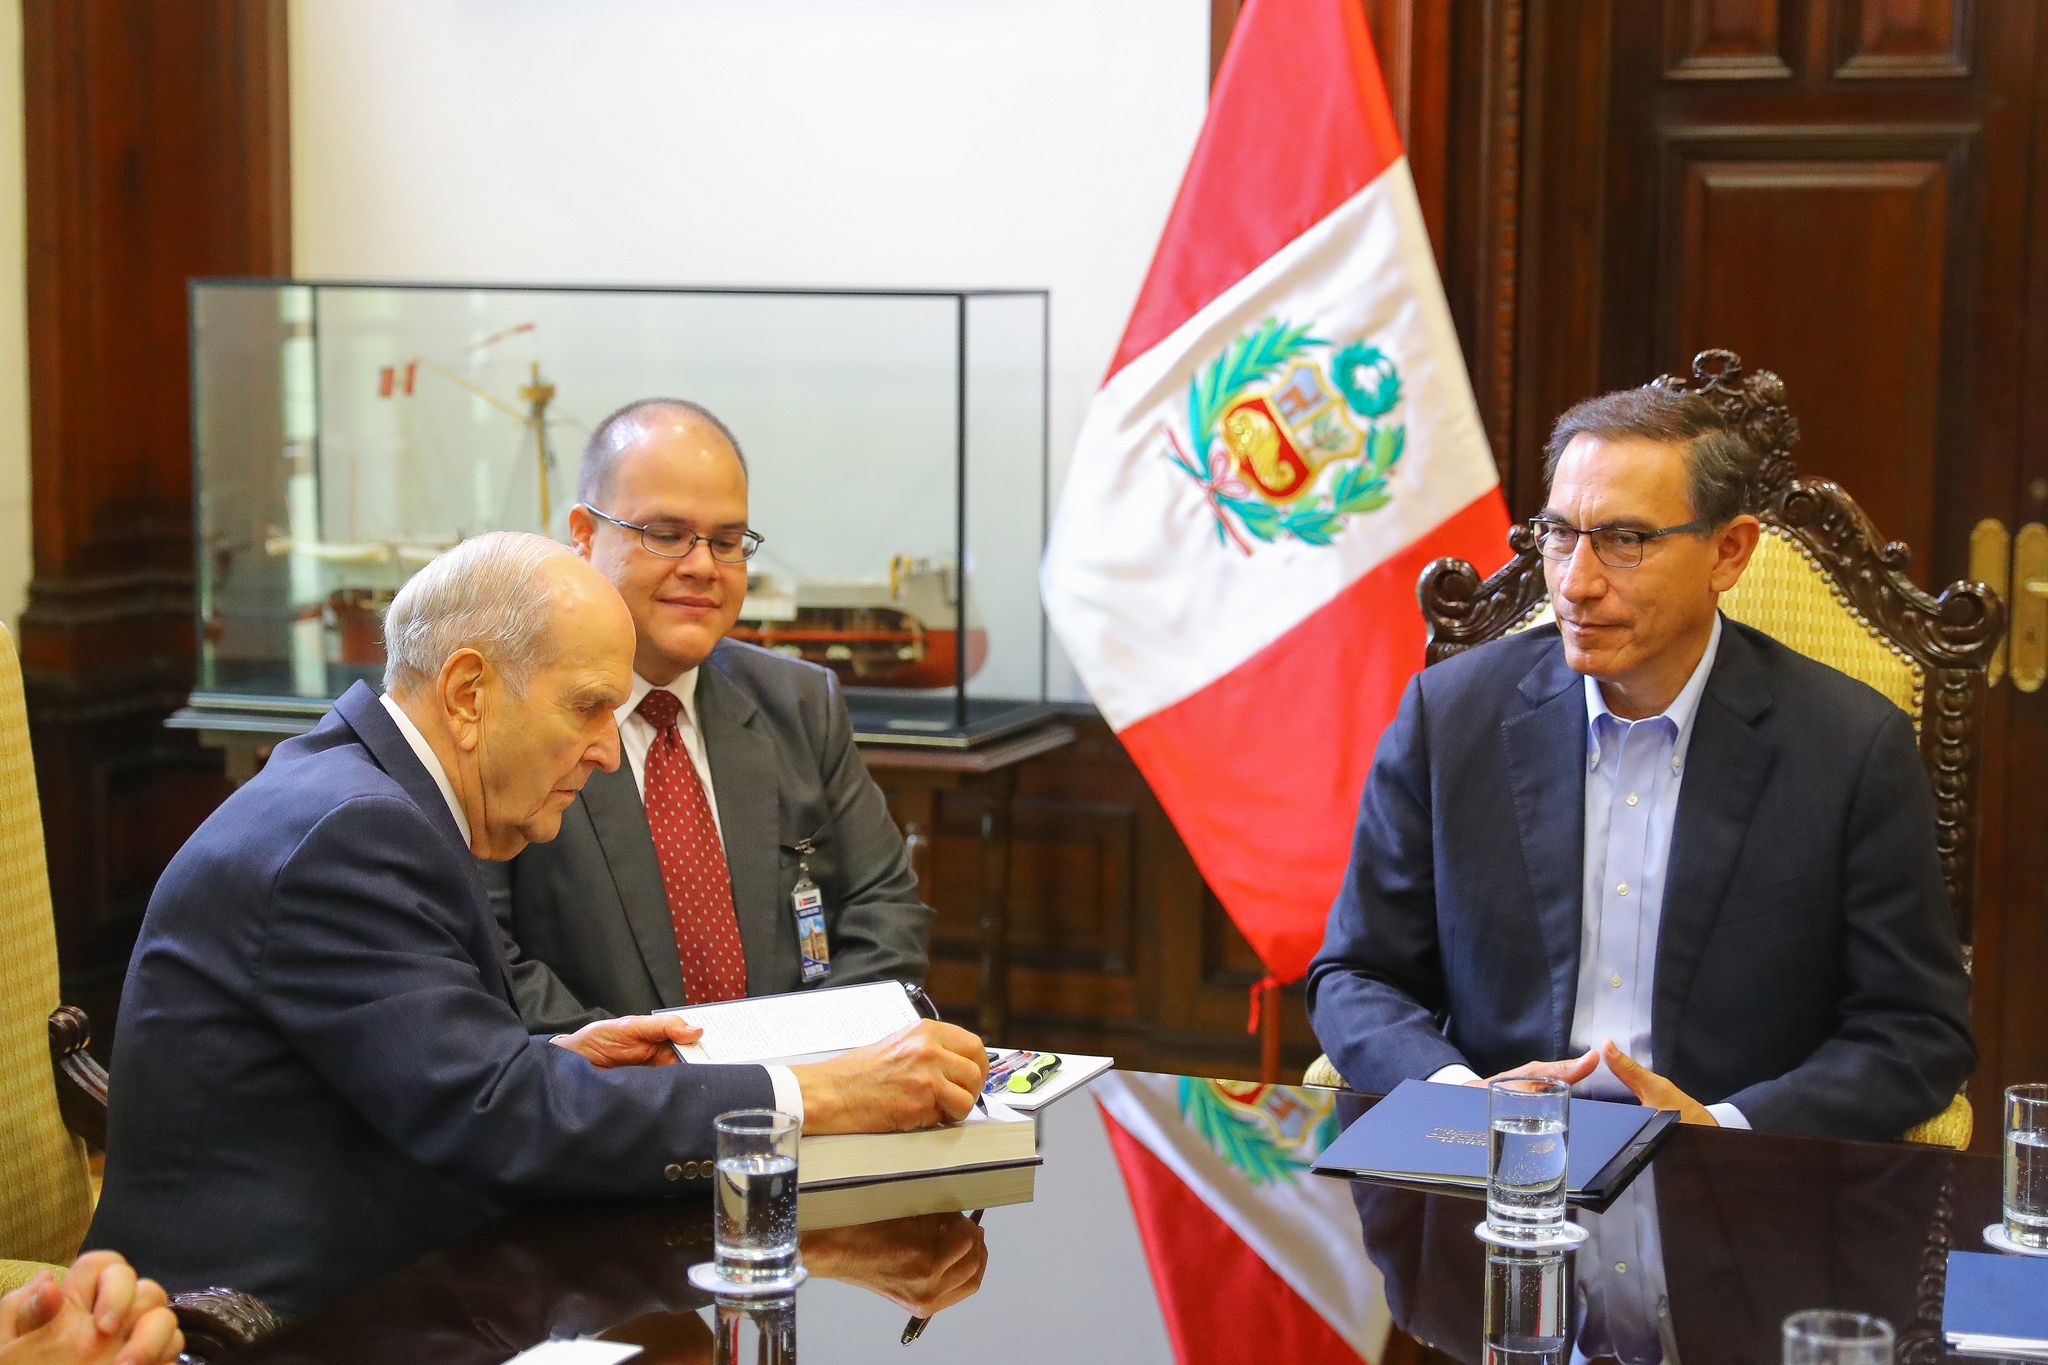 """President Russell M. Nelson signs his book, """"Teachings of President Russell M. Nelson,"""" which he presented to Peru's president, Martín Vizcarra, right, at the presidential palace in Lima, Peru, on Saturday, Oct. 20, 2018."""